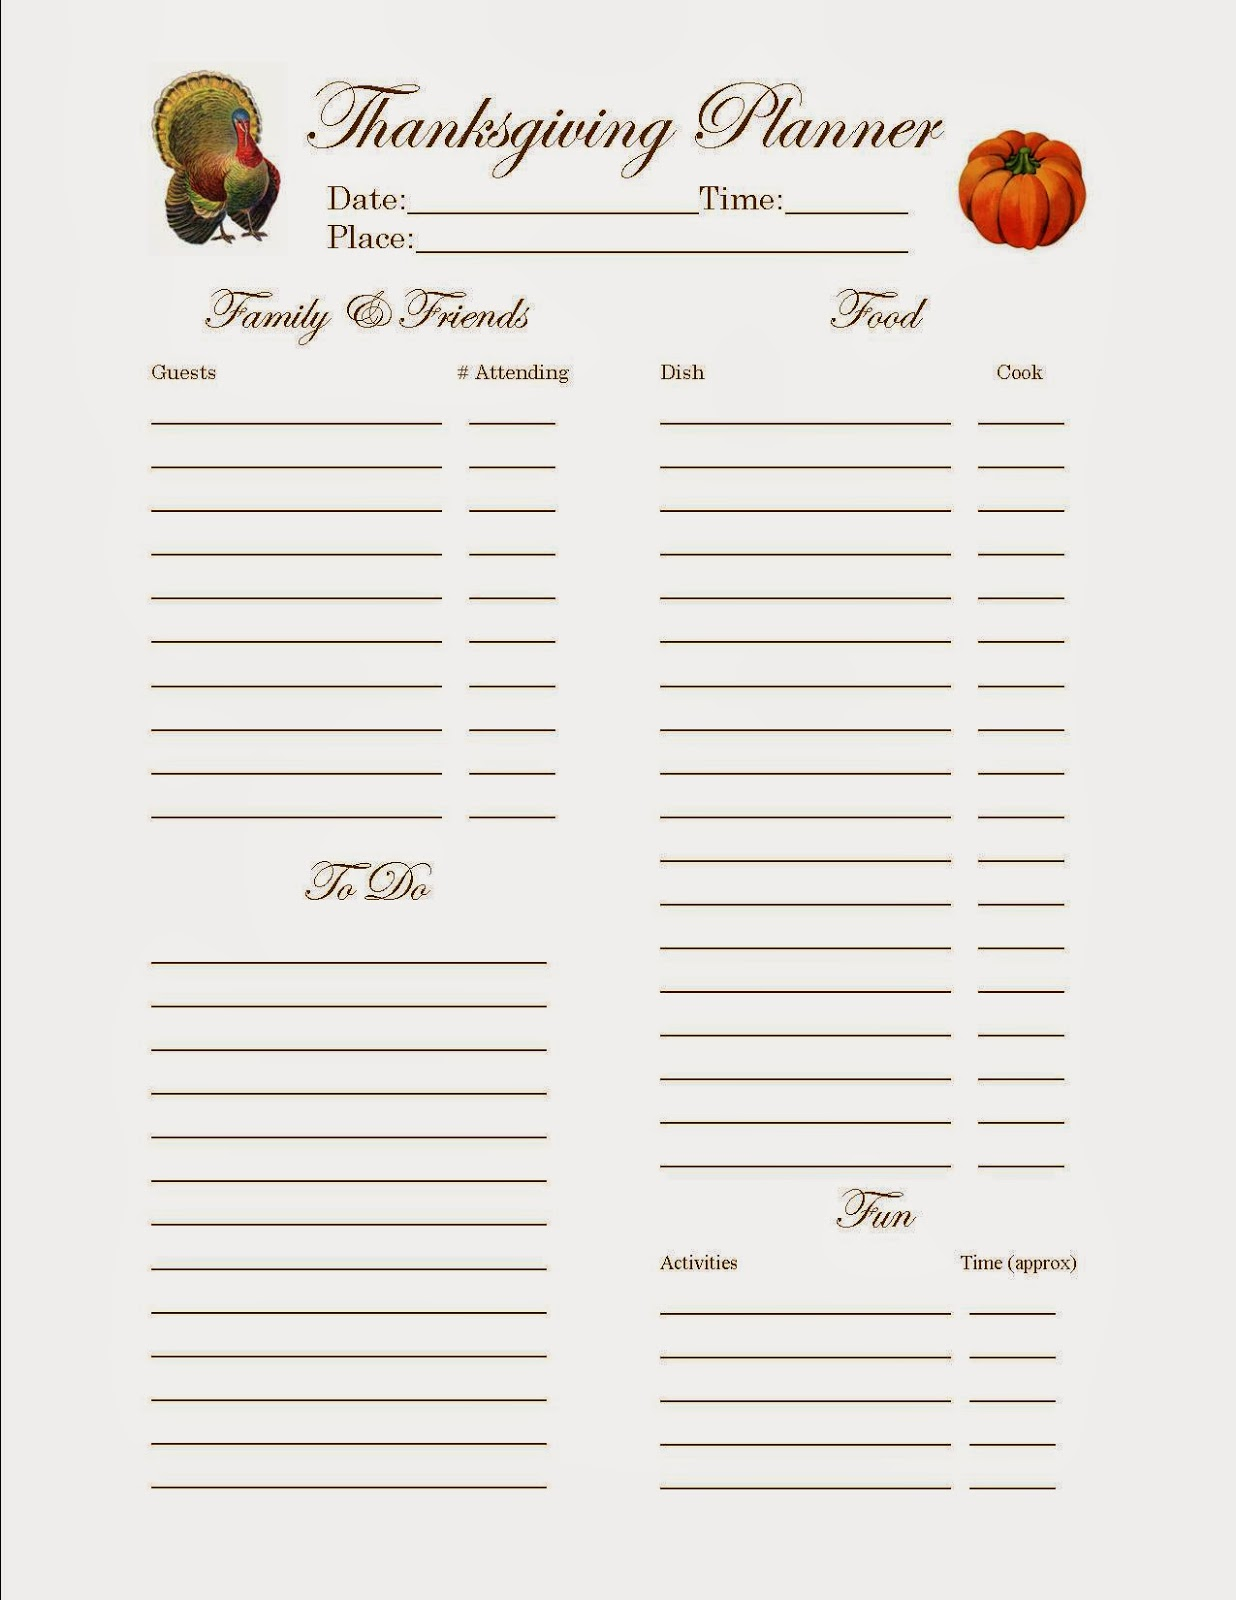 Sloppy Kisses Thankgiving Planning And Printables! Thanksgiving Planner  Printable Thankgiving Planning And Printableshtml Holiday Sign Up Sheet  Templates  Free Printable Sign Up Sheets